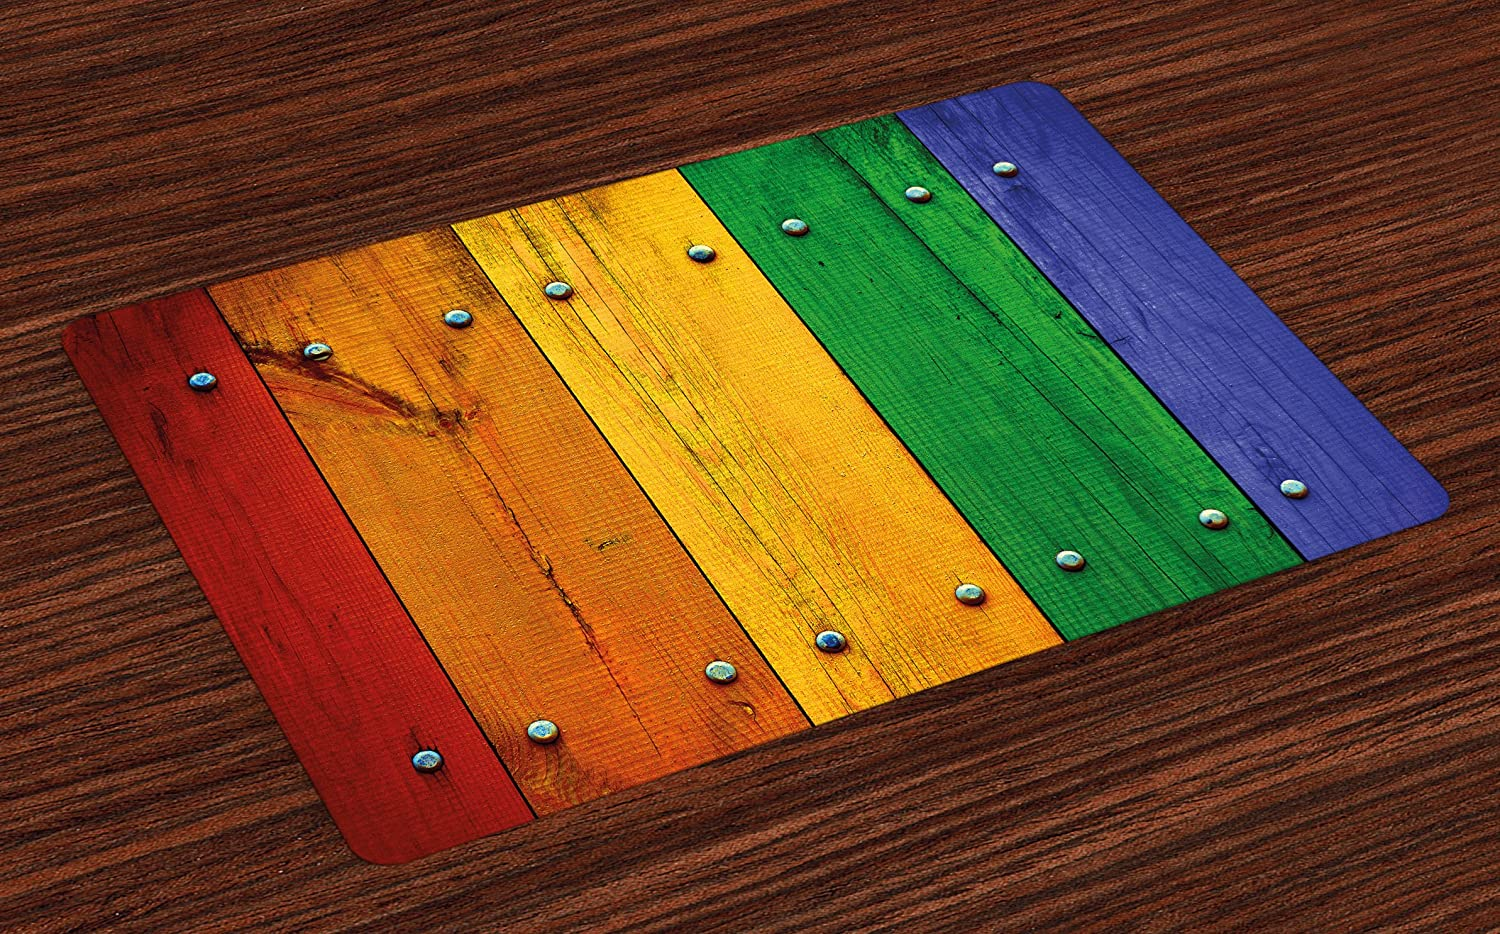 Lunarable Modern Place Mats Set of 4, Rainbow Colored Red Marigold Green and Blue Painted Woods Farm Door Image Print, Washable Fabric Placemats for Dining Table, Standard Size, Orange Green